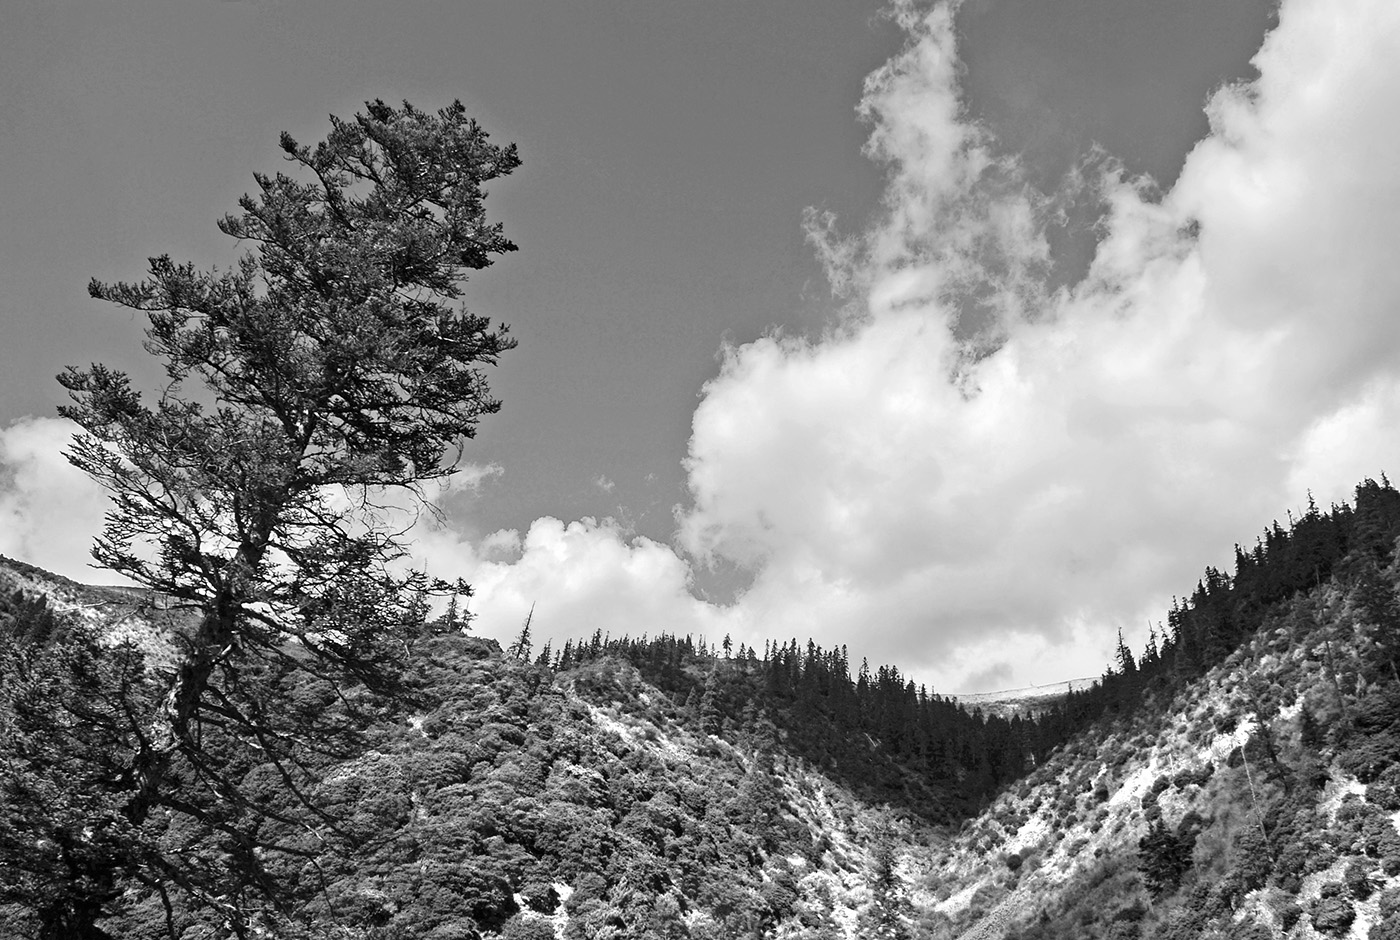 Landscape Scenery Paul Chong Photography - Black and white photography with color accents